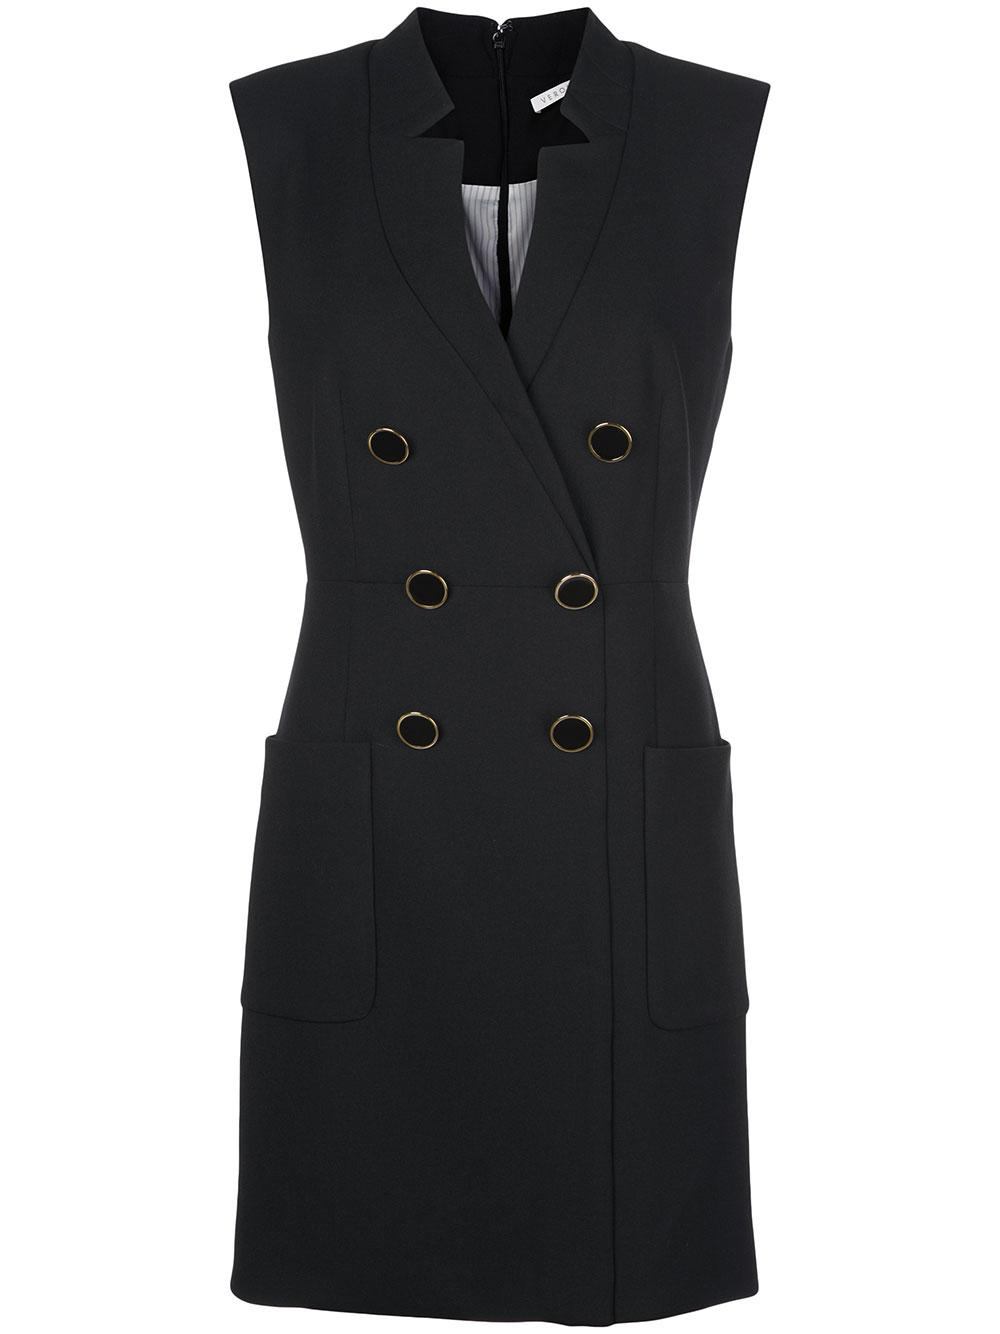 Doreen Cap Sleeve Double Breasted Blazer Dress Item # 1911SU0012785